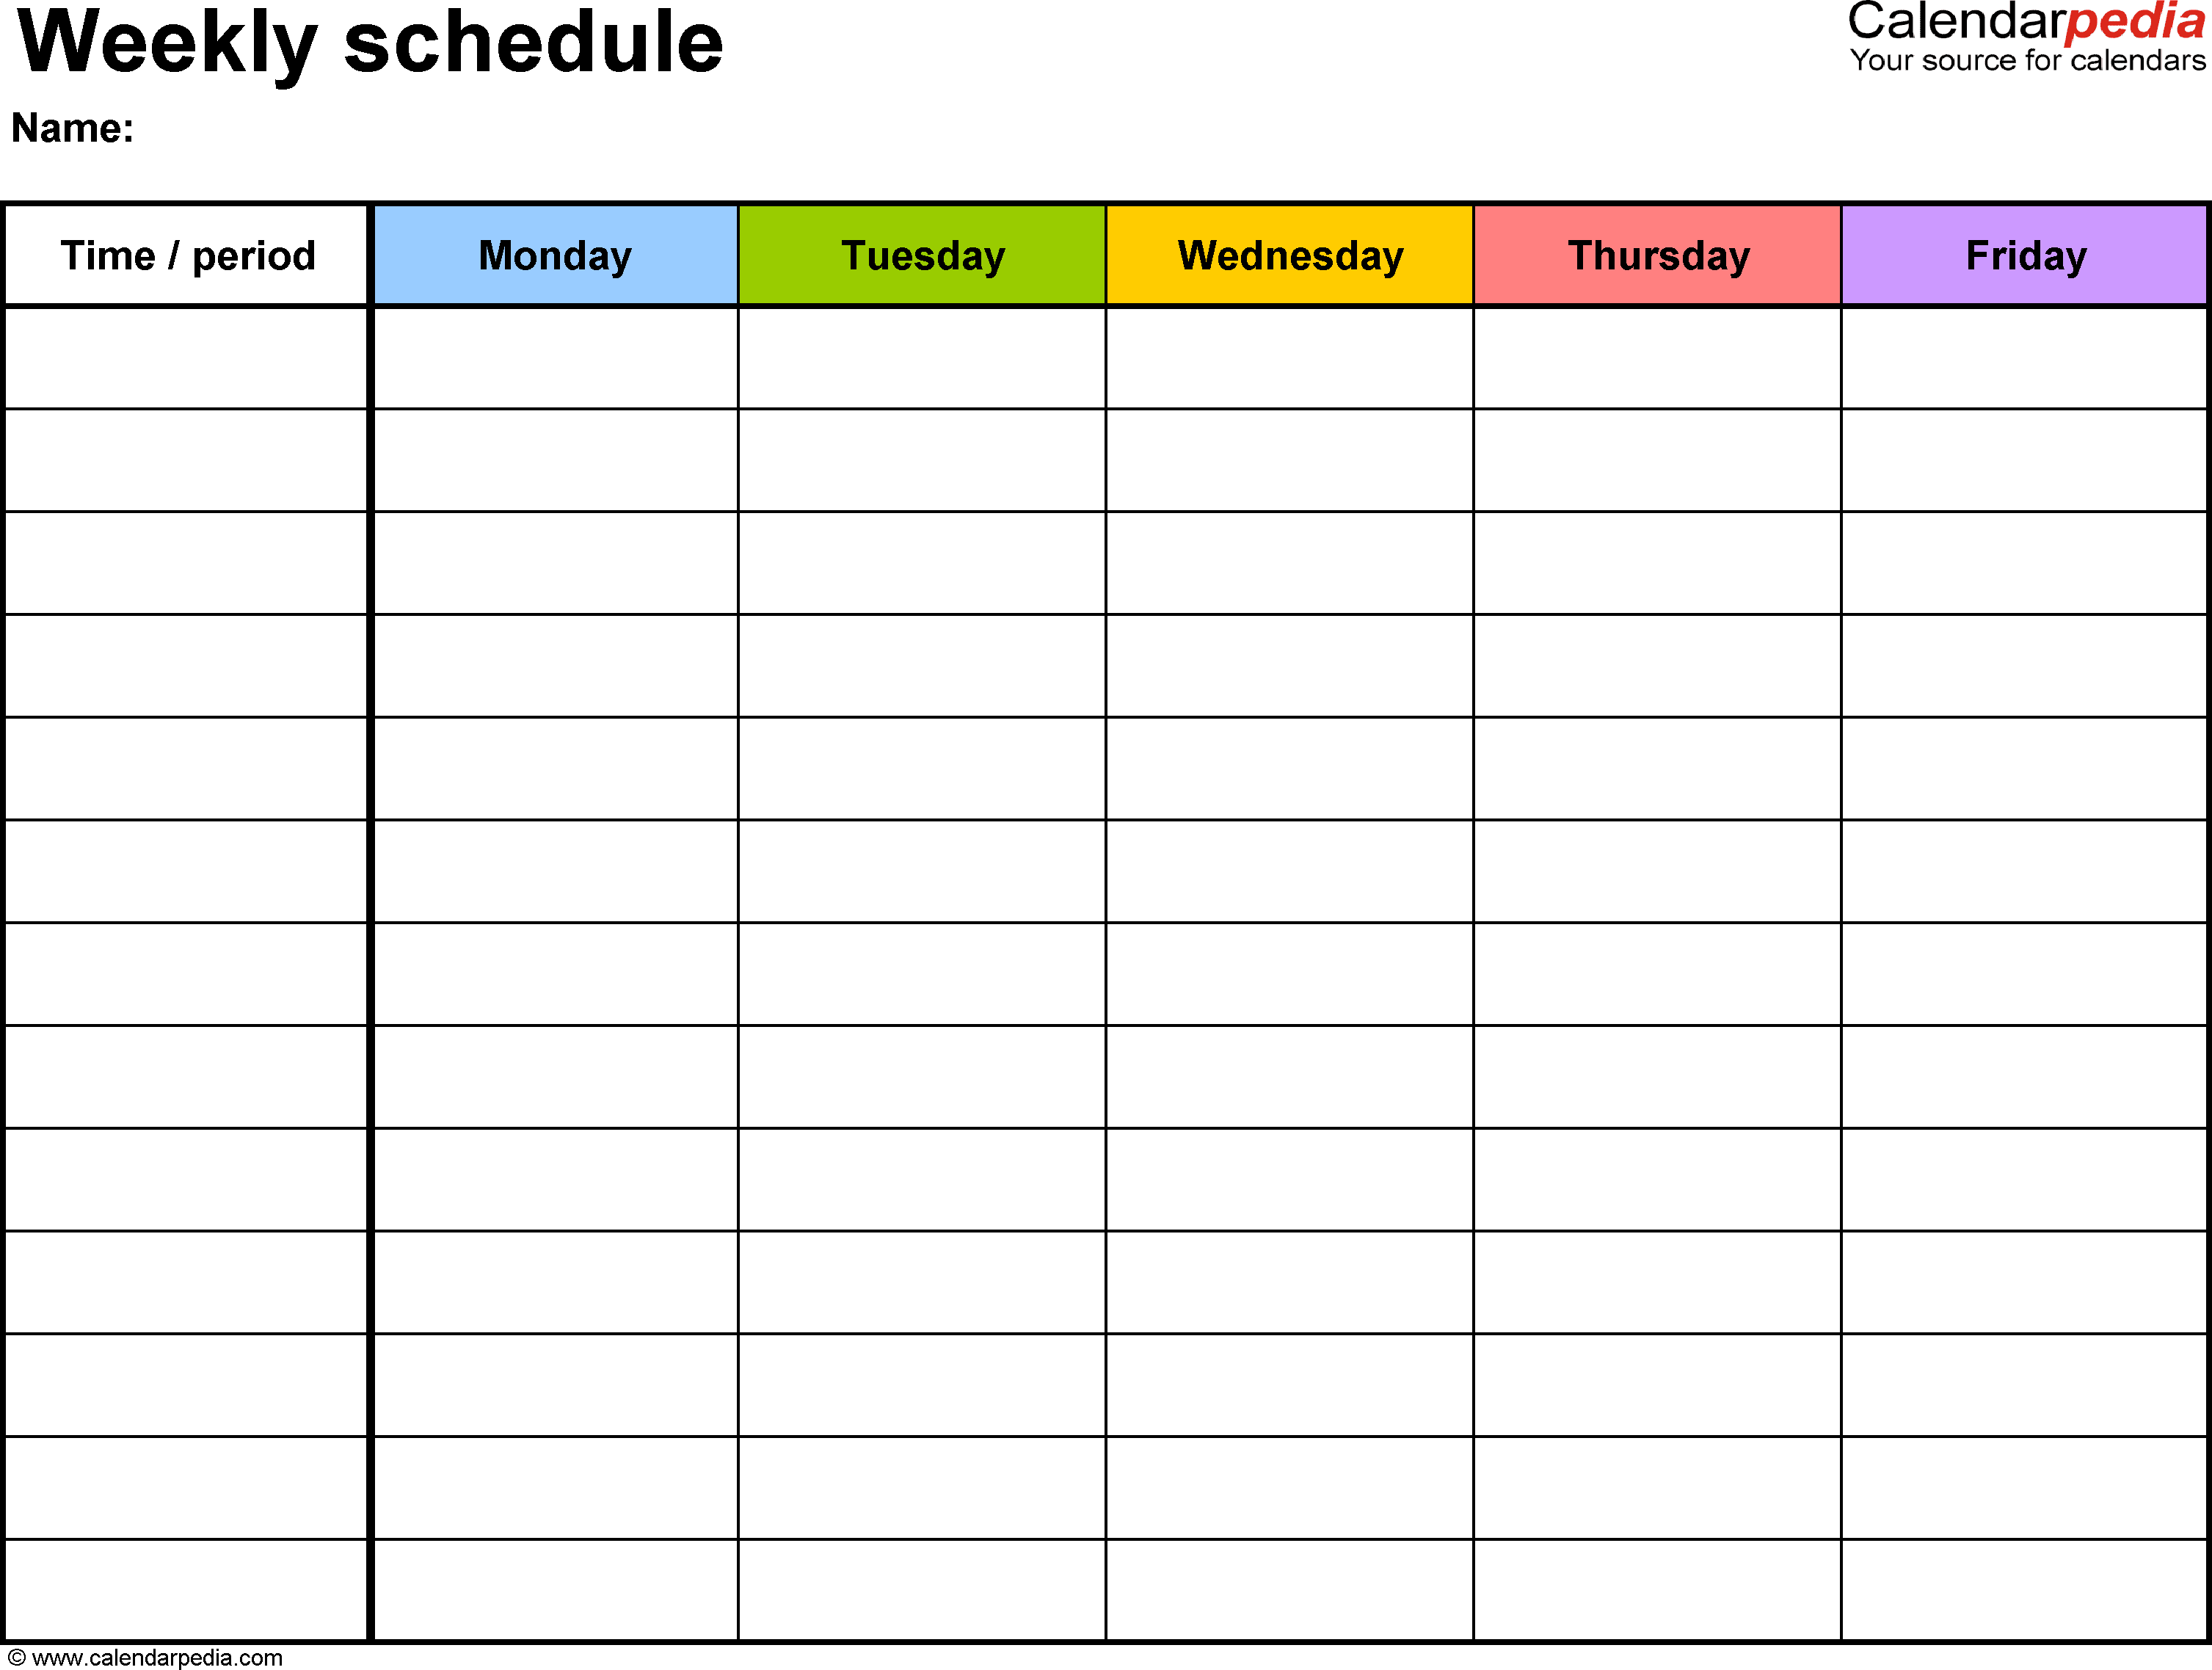 Calendar Planner C : Weekly schedule template for word version landscape